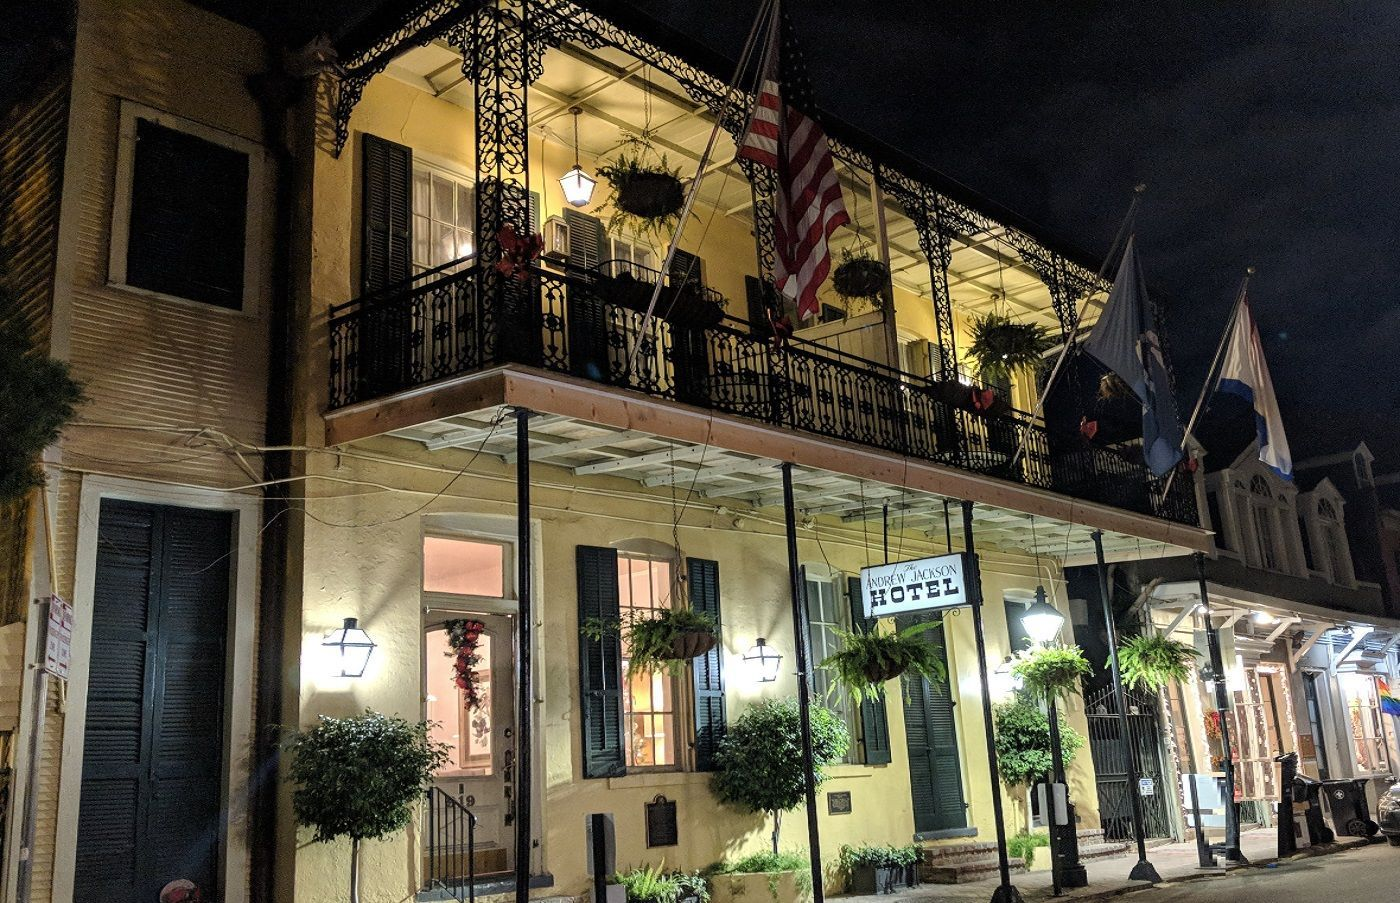 la-andrew-jackson-hotel-3-haunted-journeys